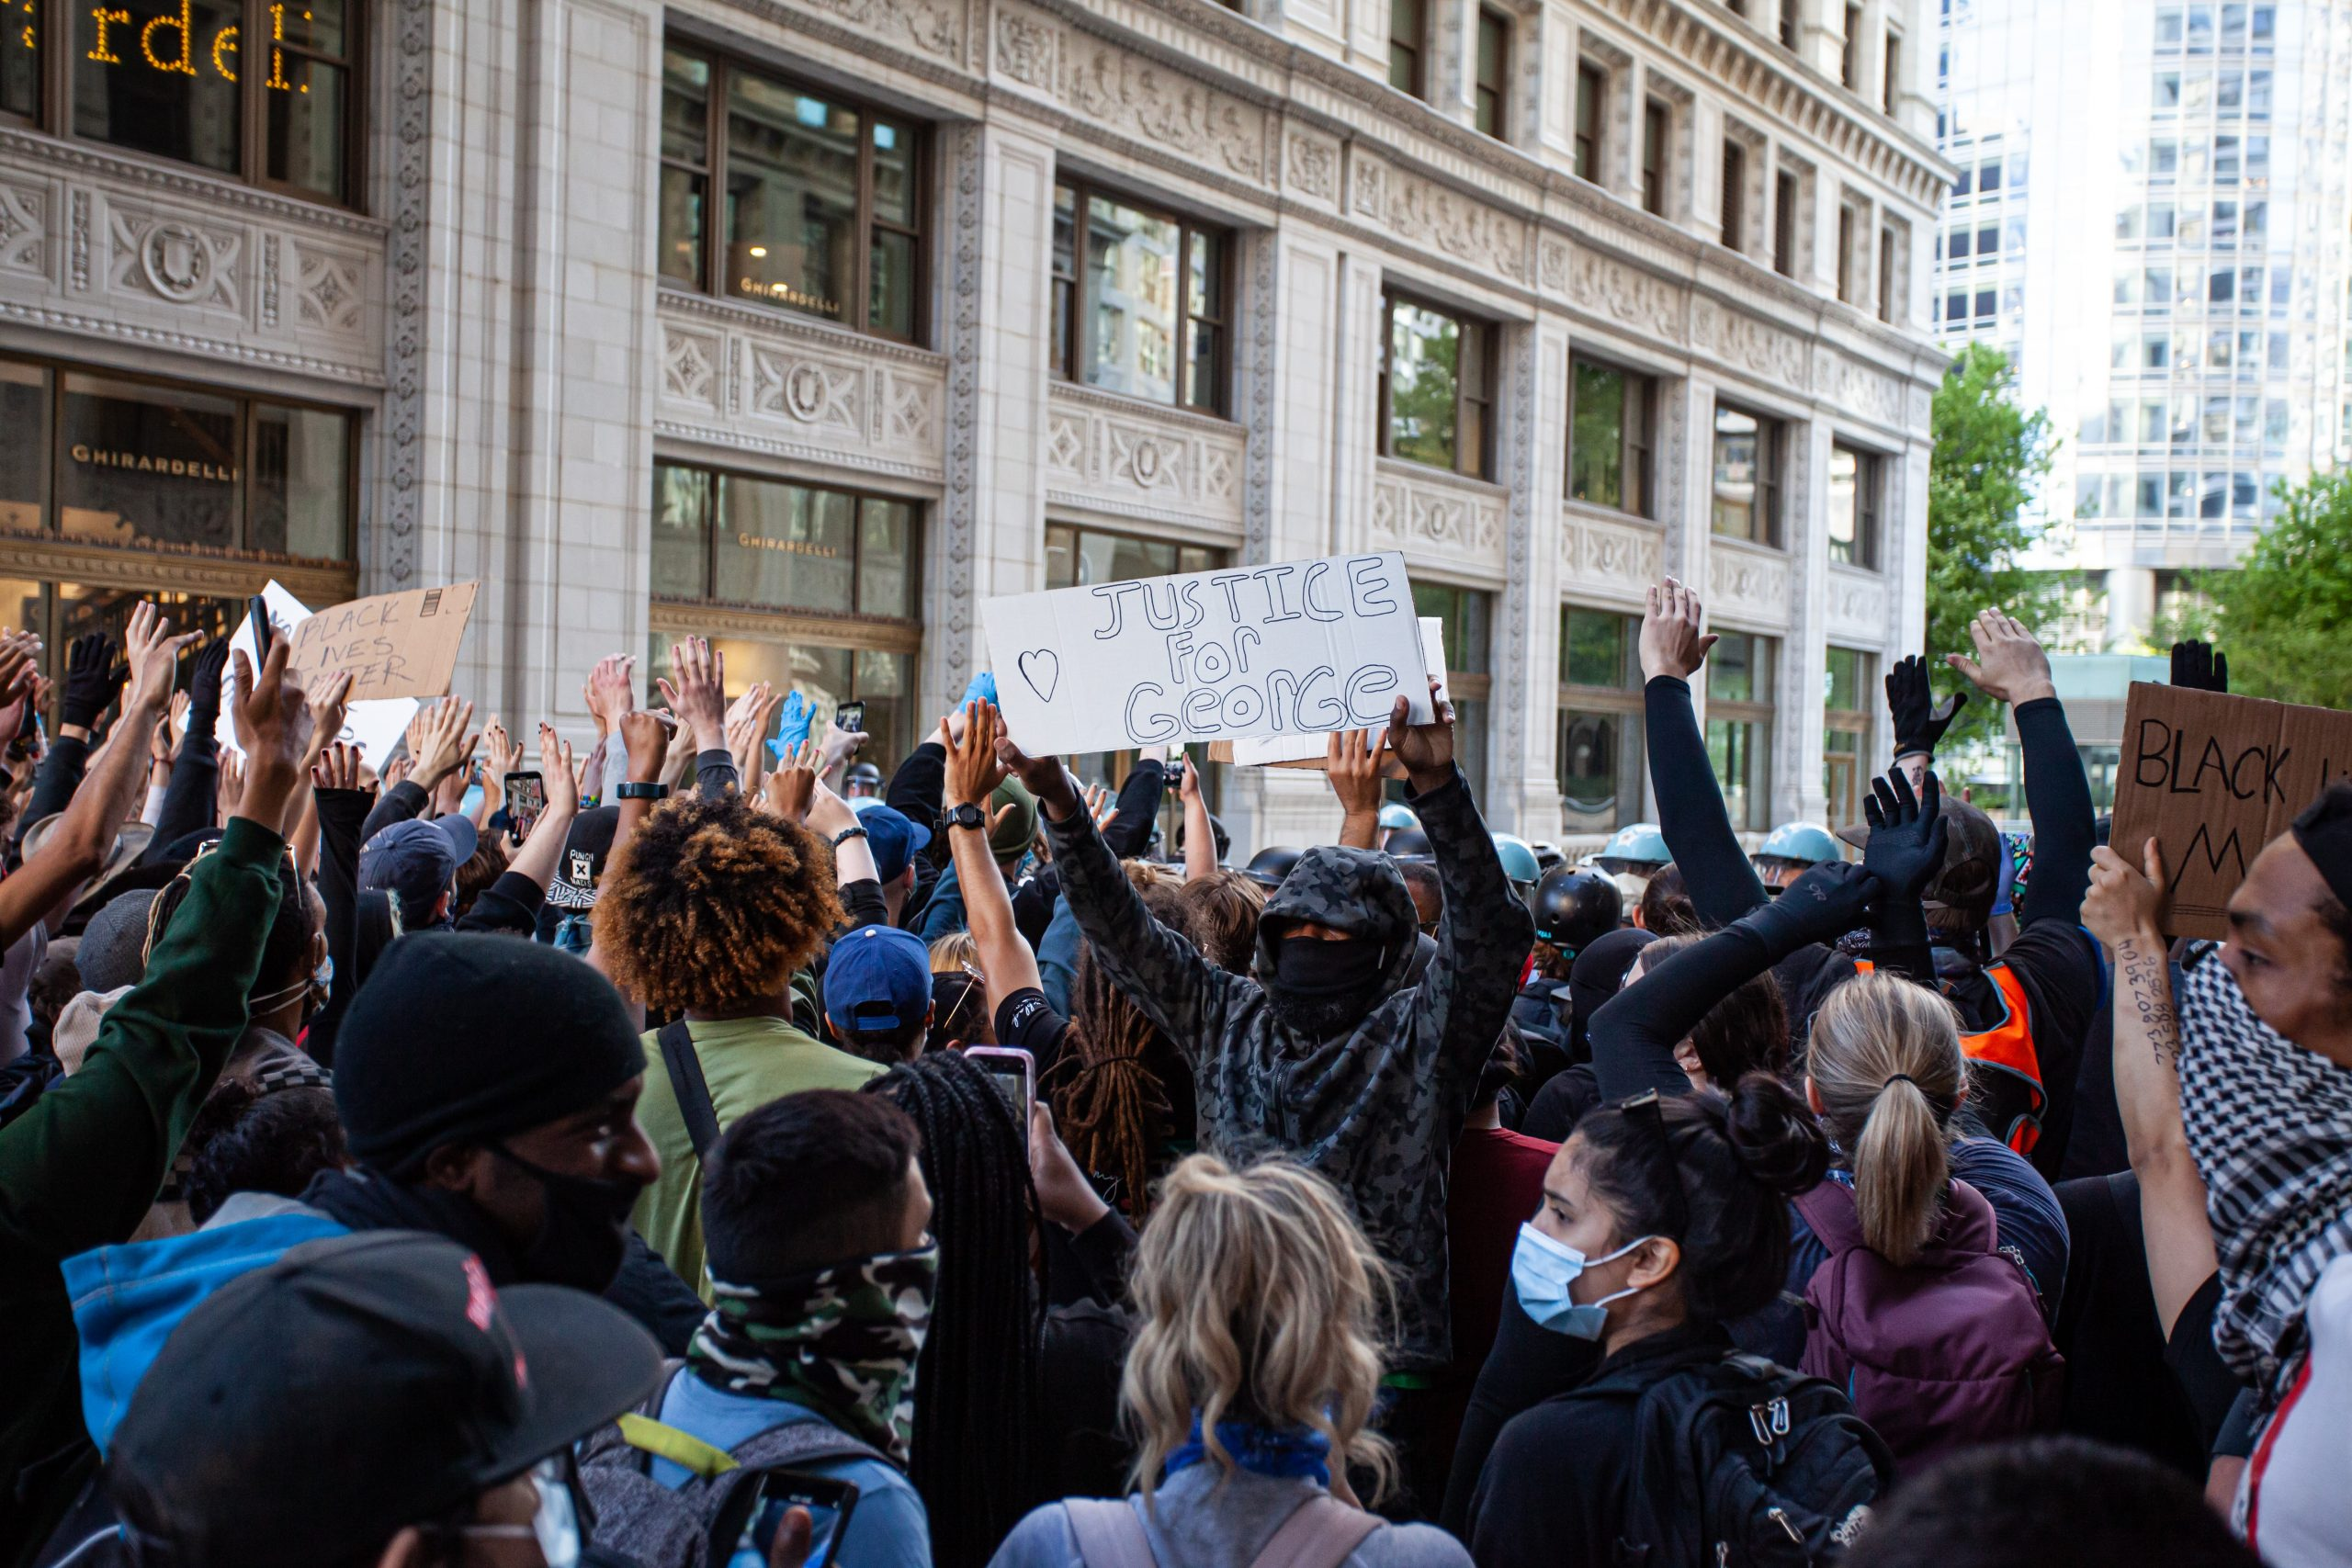 Protest for George Floyd in downtown Chicago